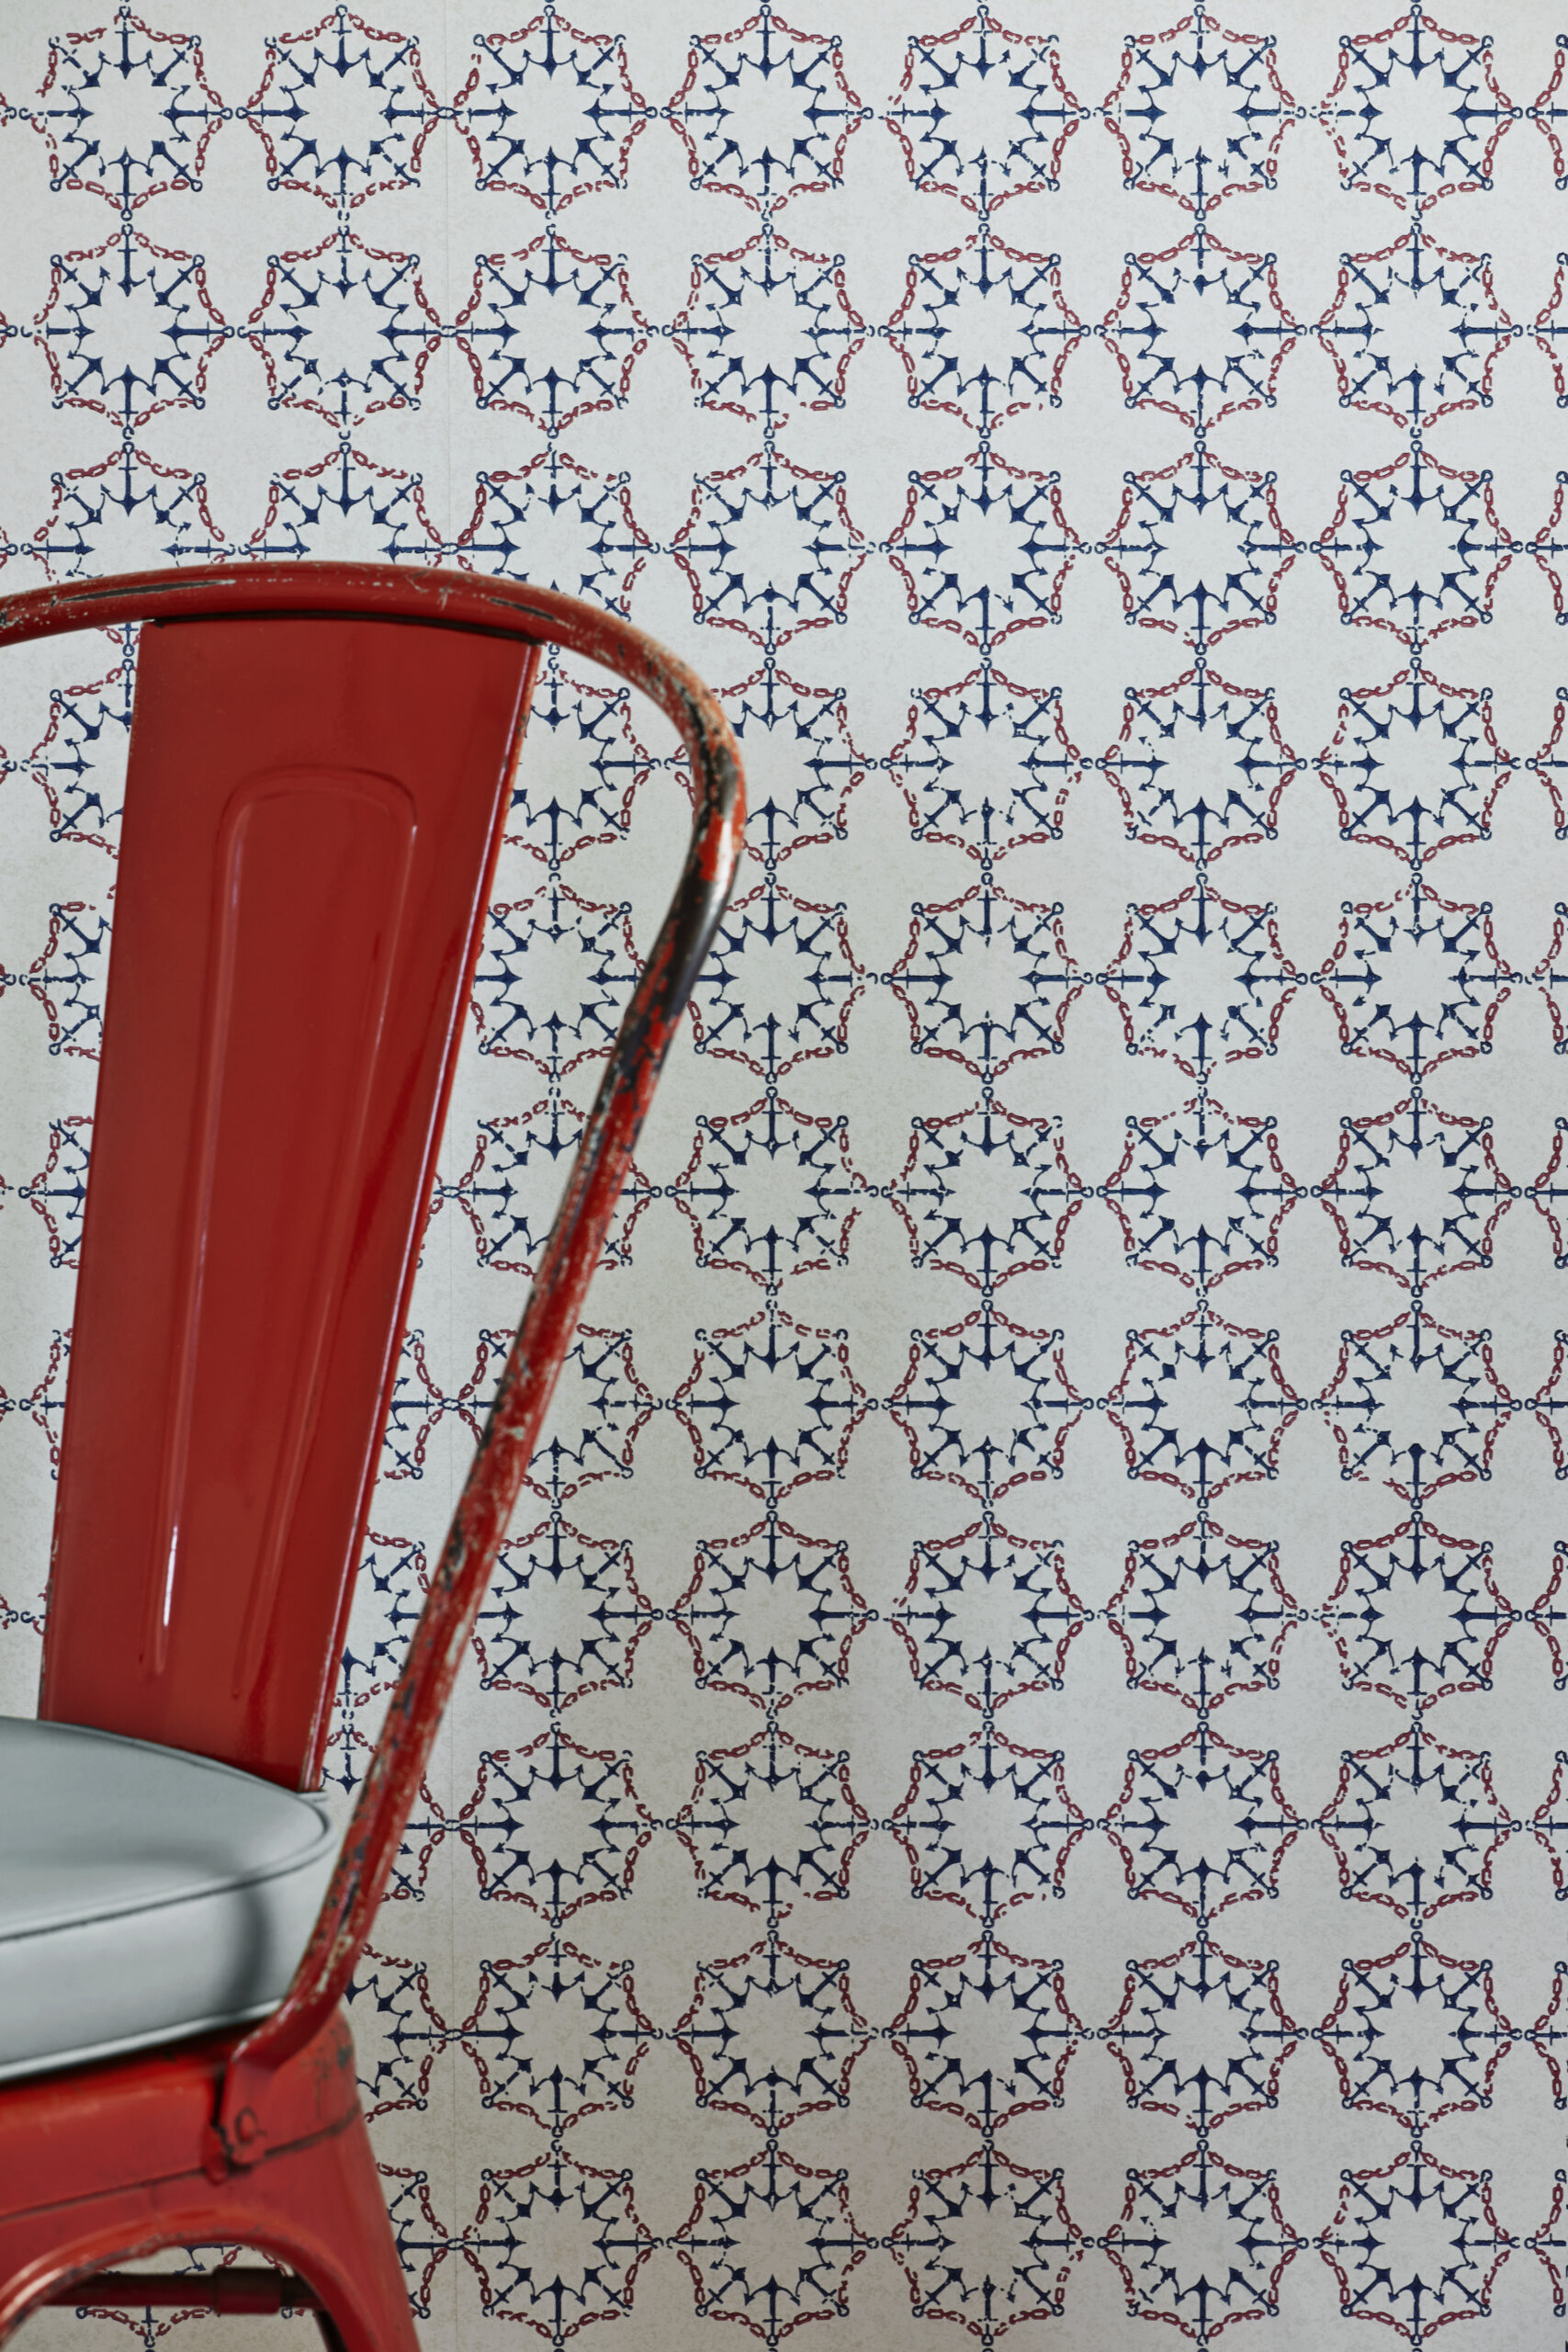 Room Shot of Anchor tile wallpaper in Red, White and Blue by Barnaby Gates